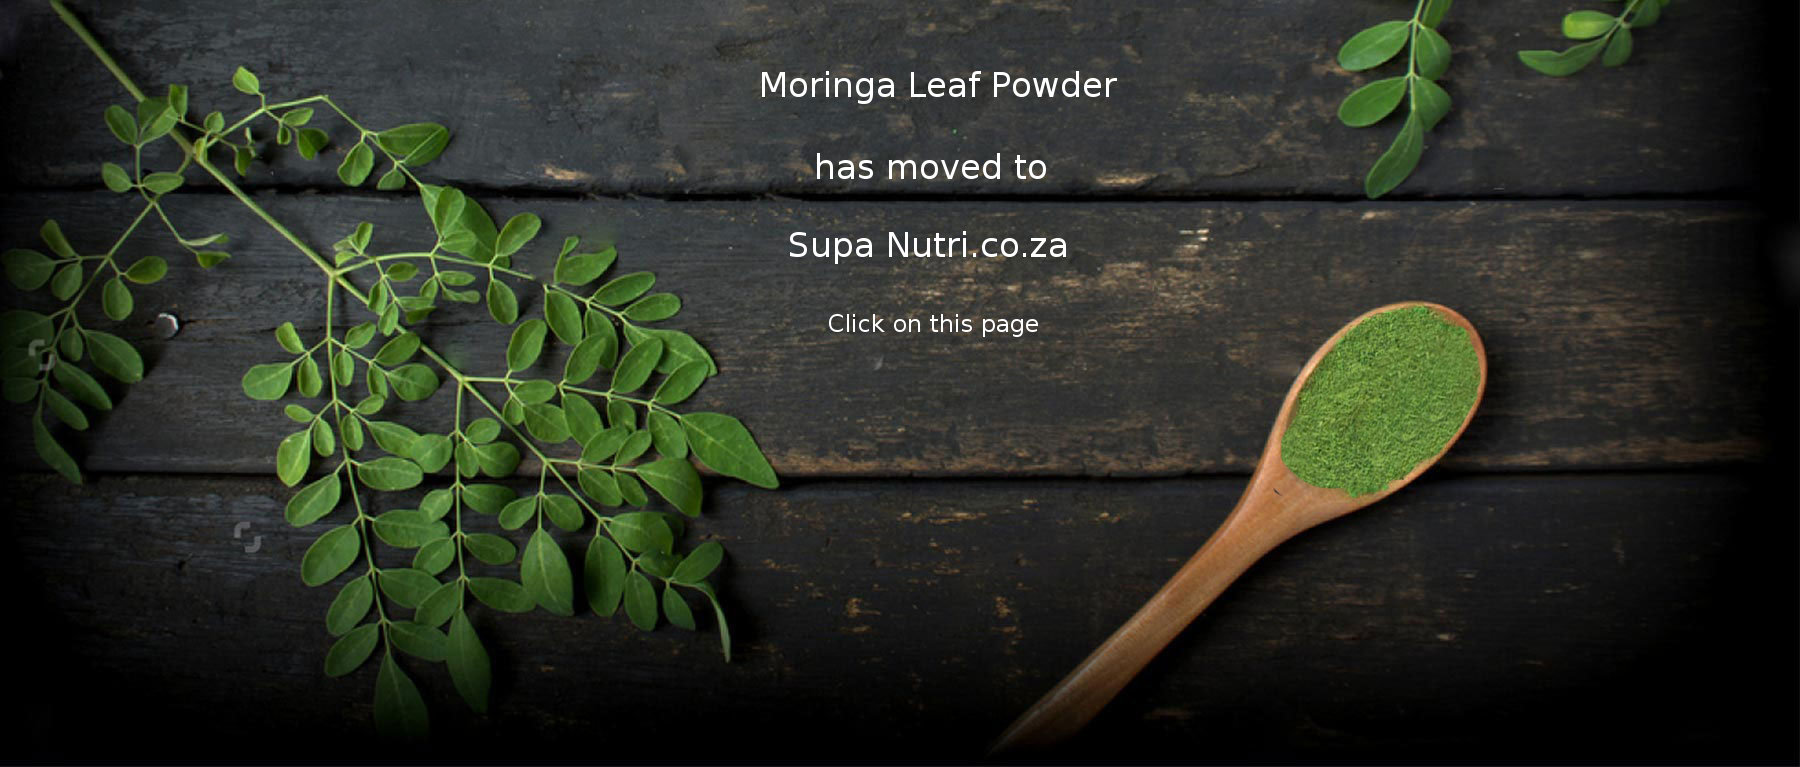 Moringa Leaf Powder Supa Nutri